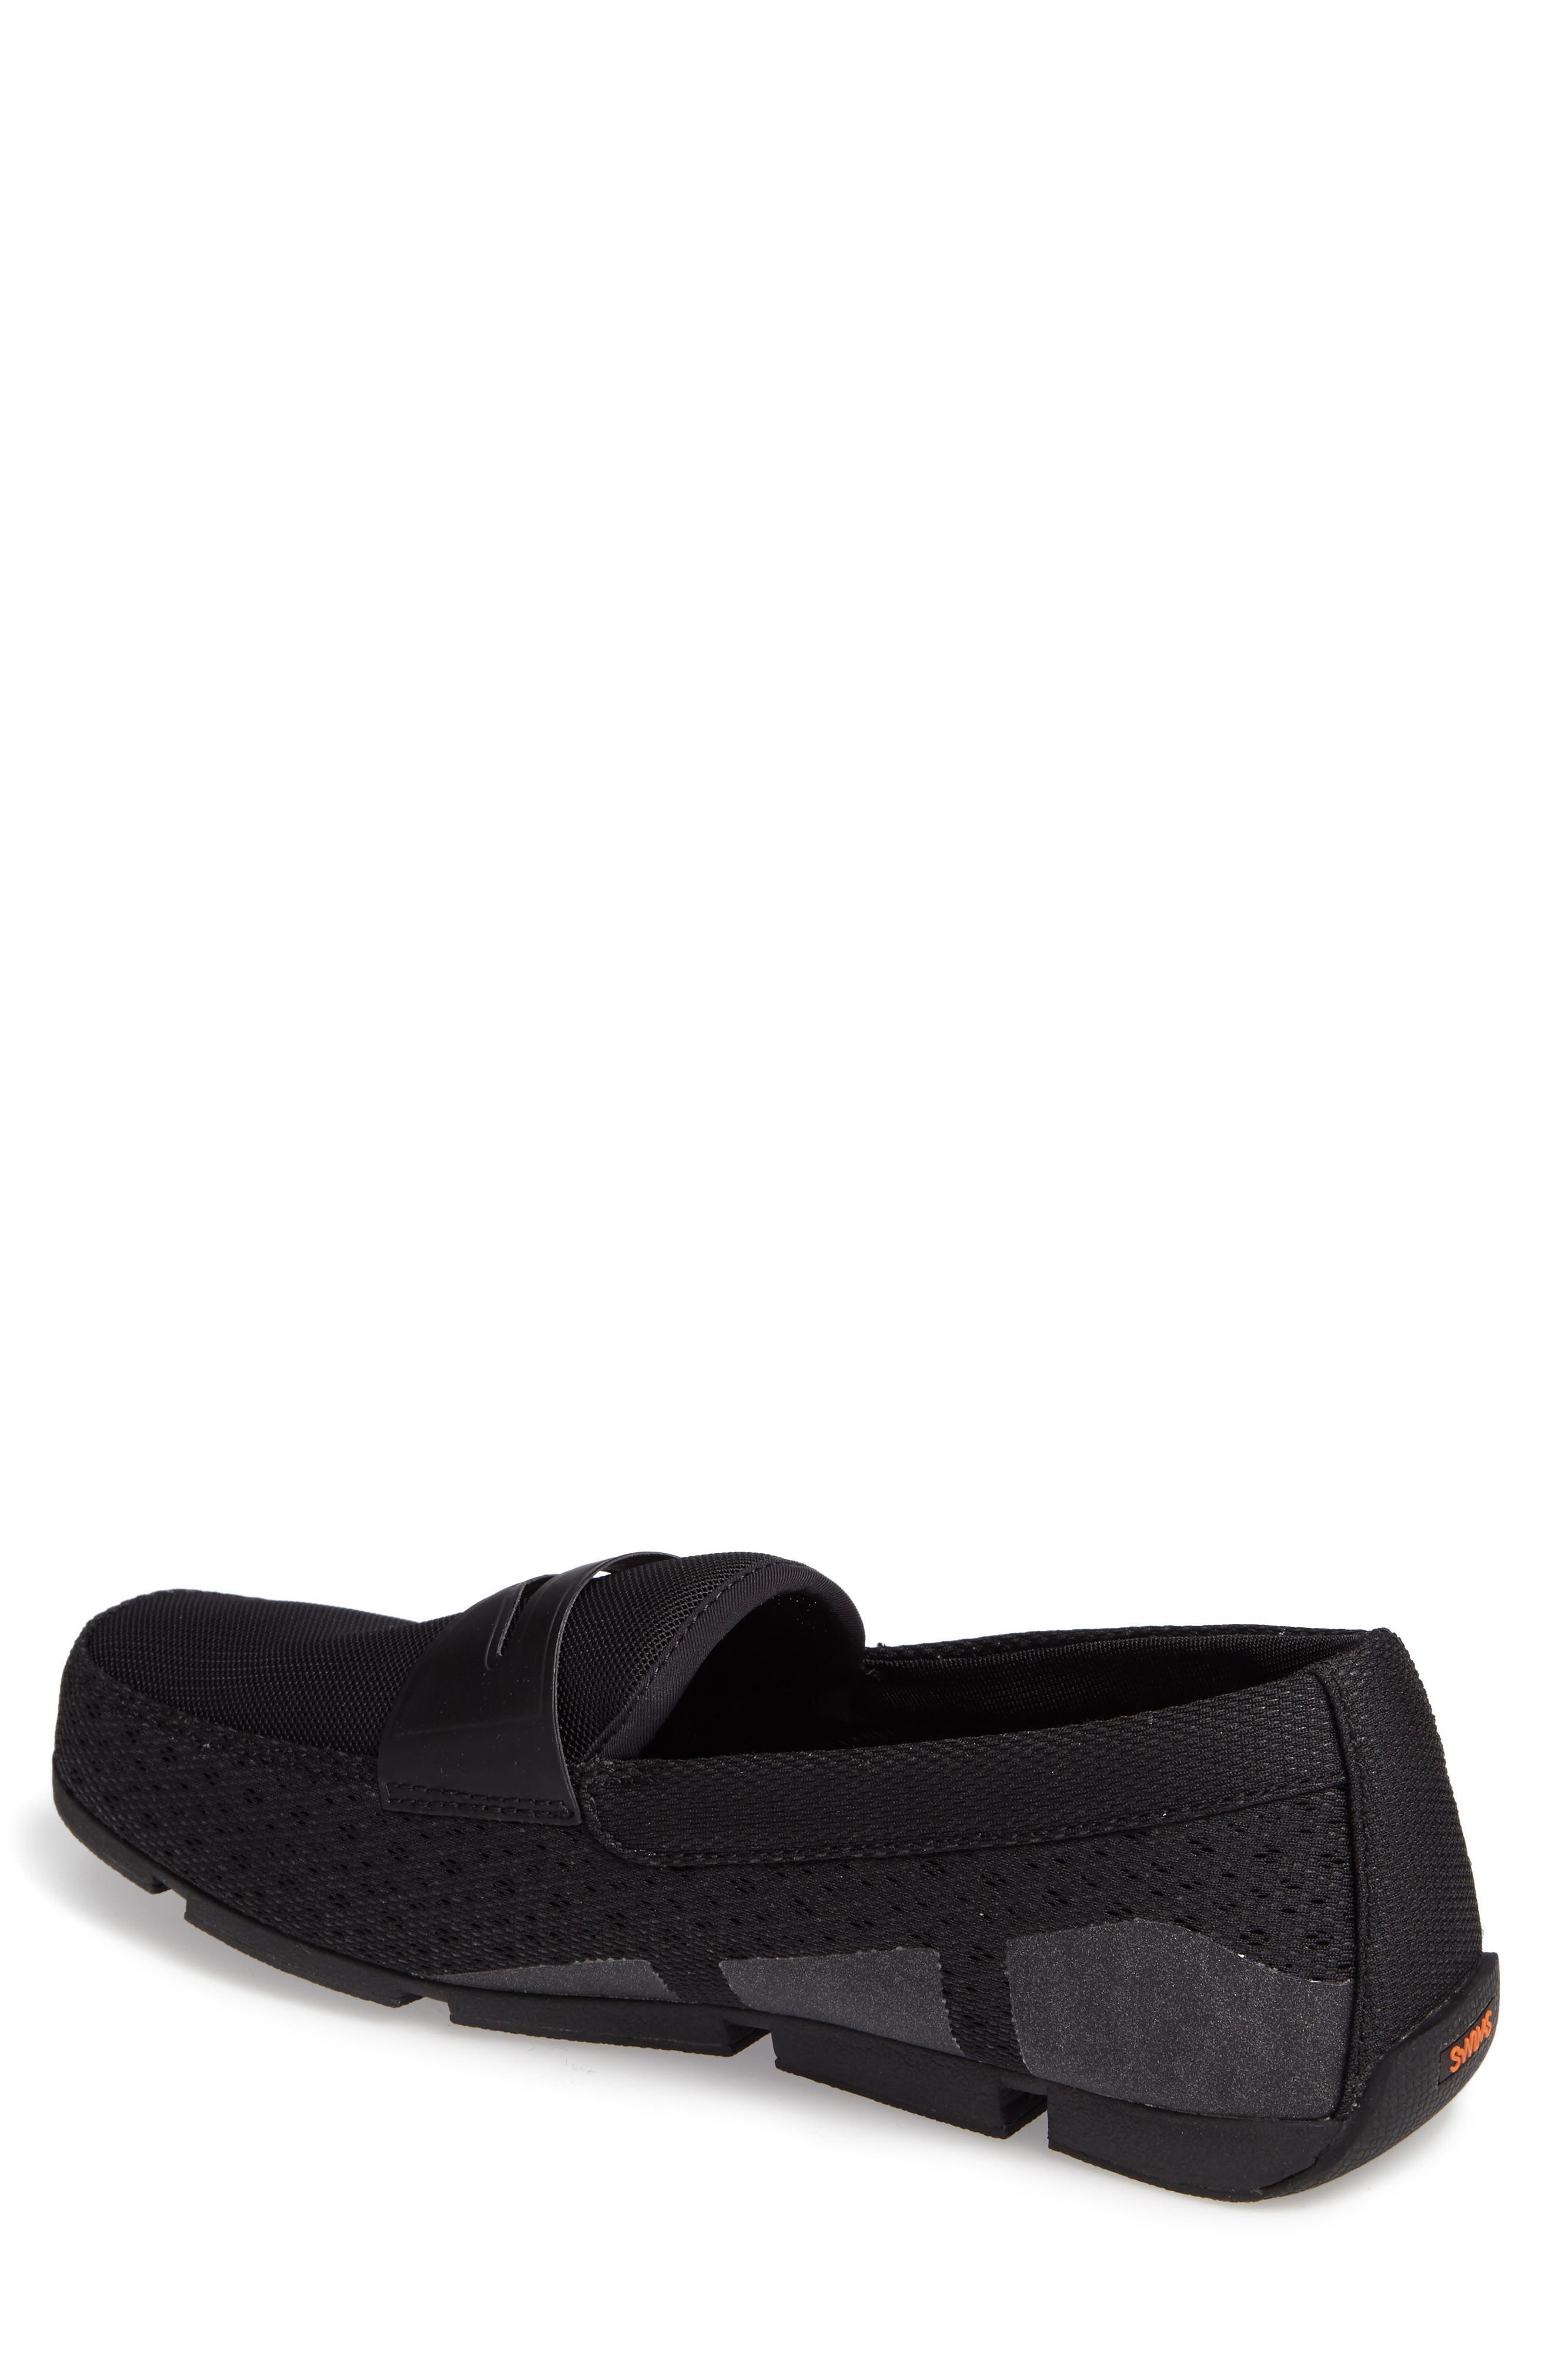 Breeze Penny Loafer,                             Alternate thumbnail 6, color,